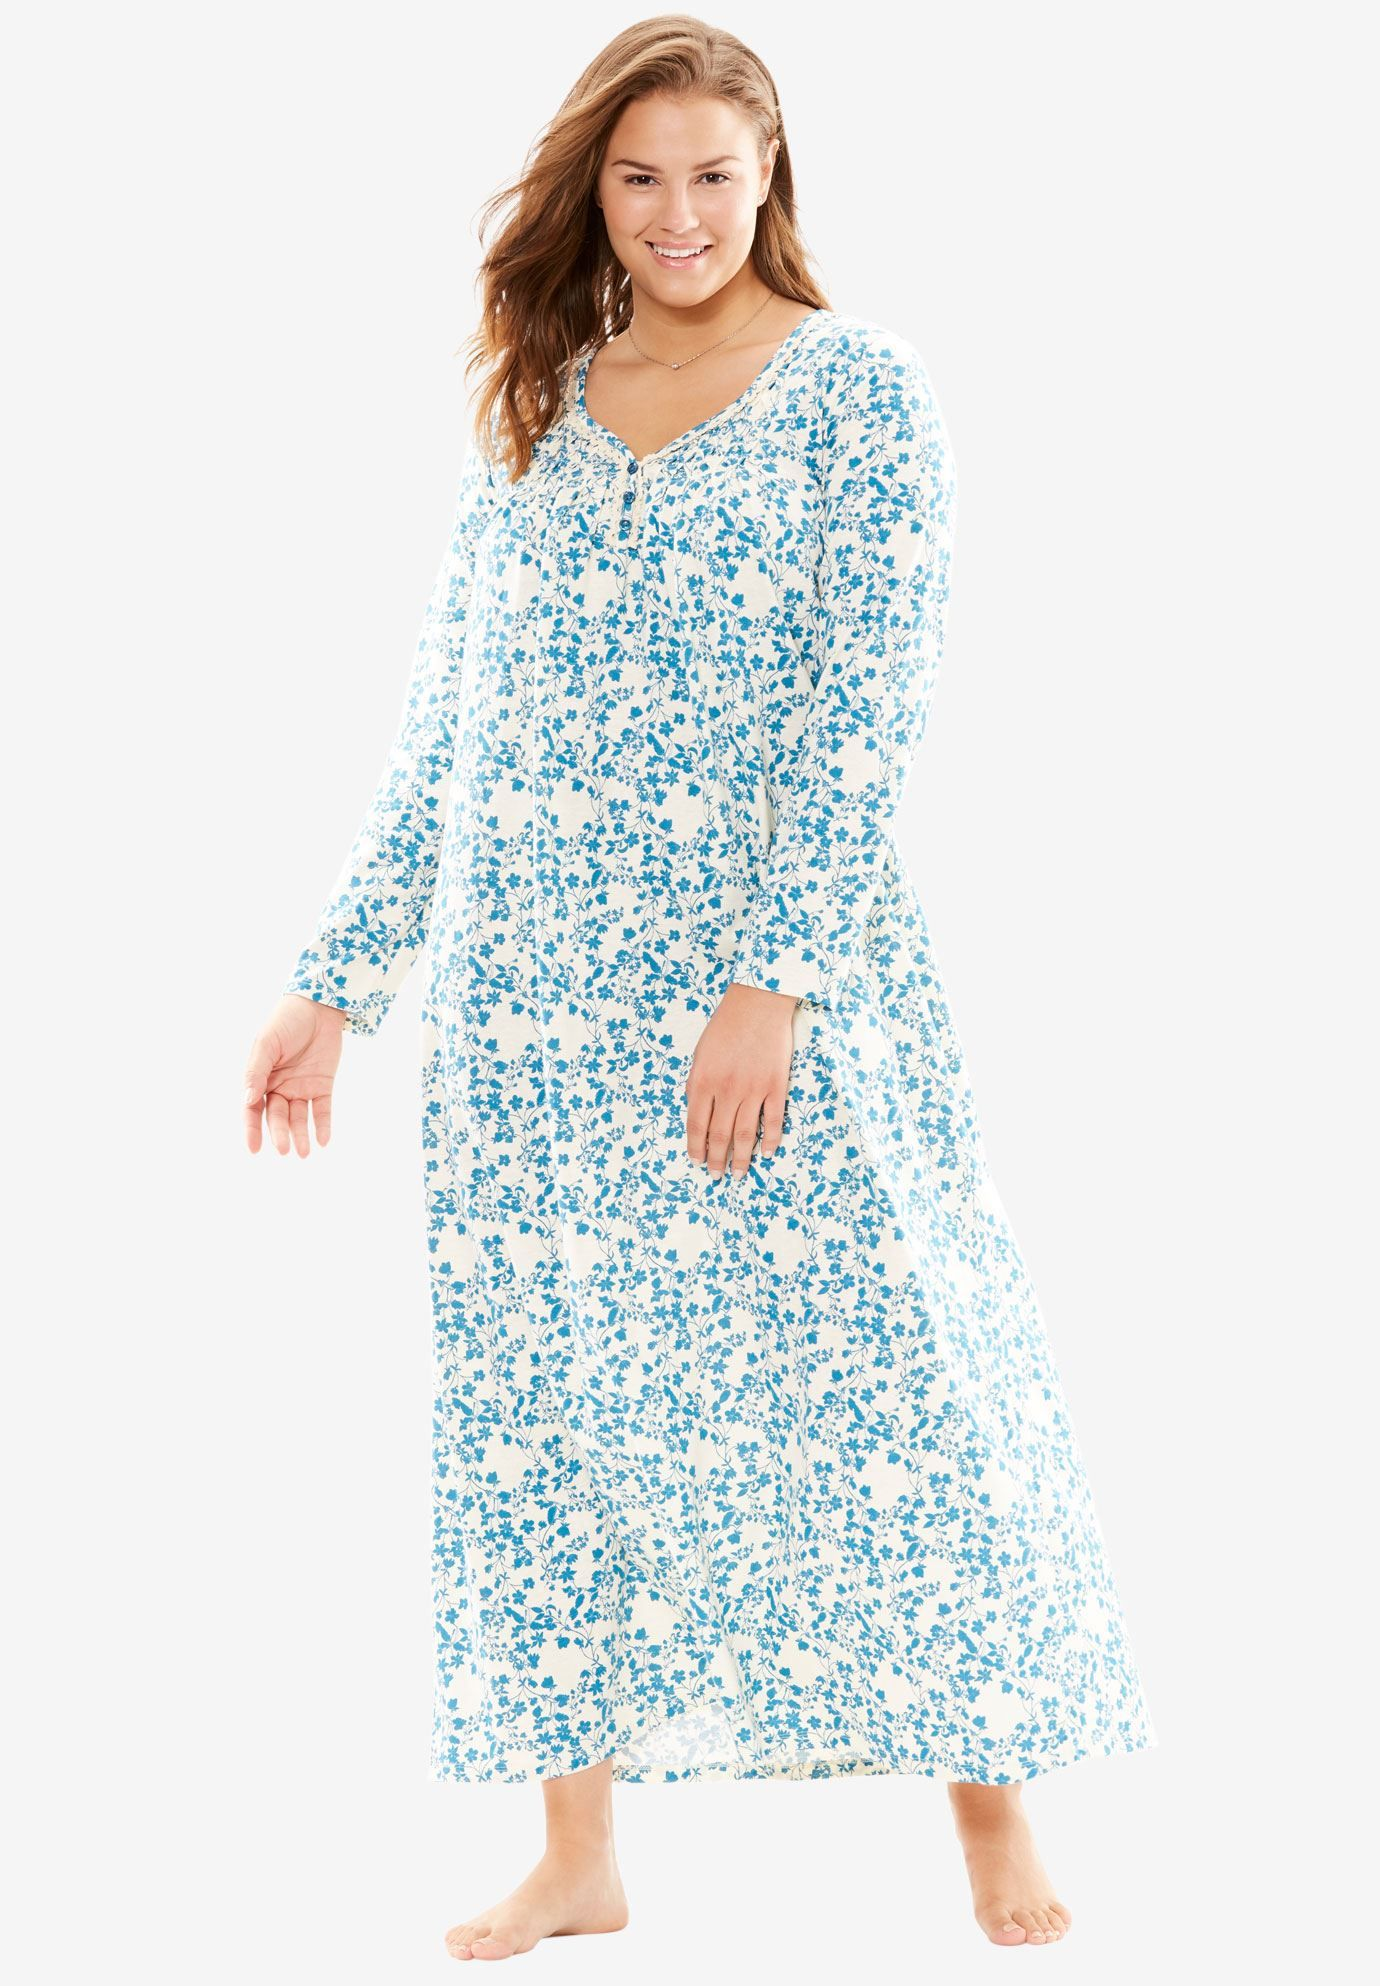 7fe0fd211edc6 Fit   Flare Sleep Gown - Women s Plus Size Clothing